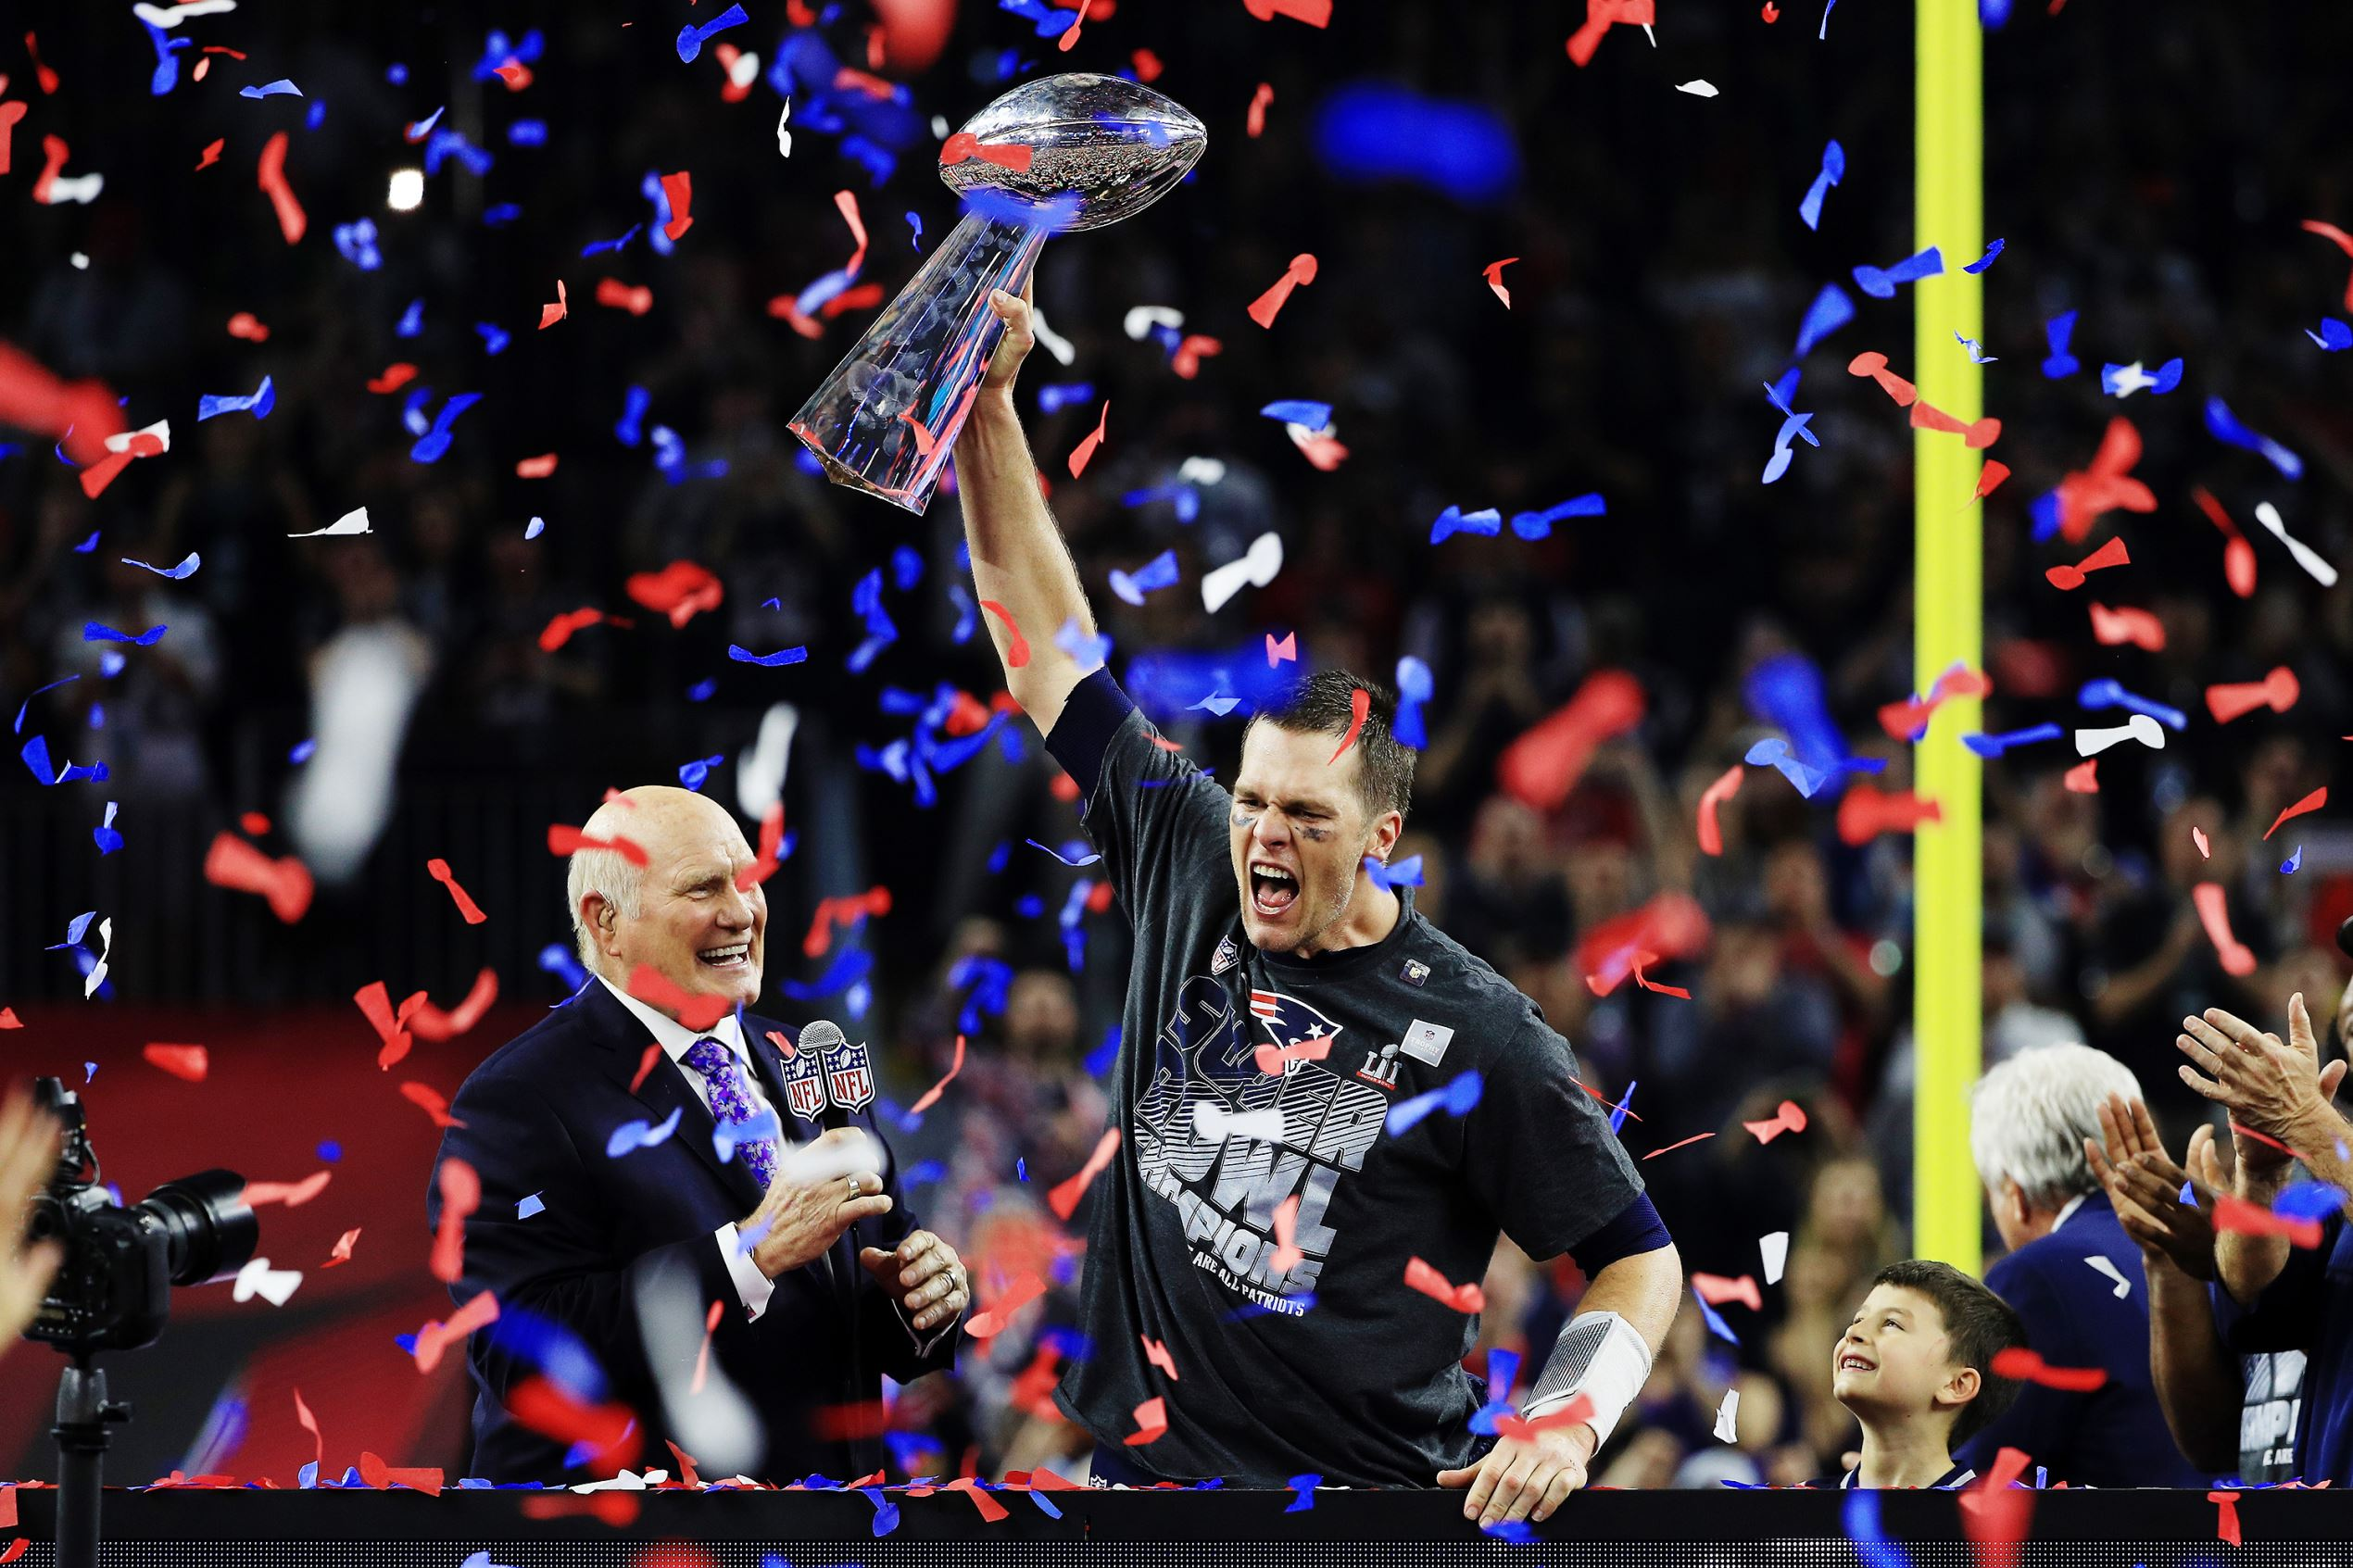 Slide 1 of 29: Tom Brady #12 of the New England Patriots holds the Vince Lombardi Trophy after defeating the Atlanta Falcons 34-28 during Super Bowl 51 at NRG Stadium on Feb. 5, in Houston, Texas.